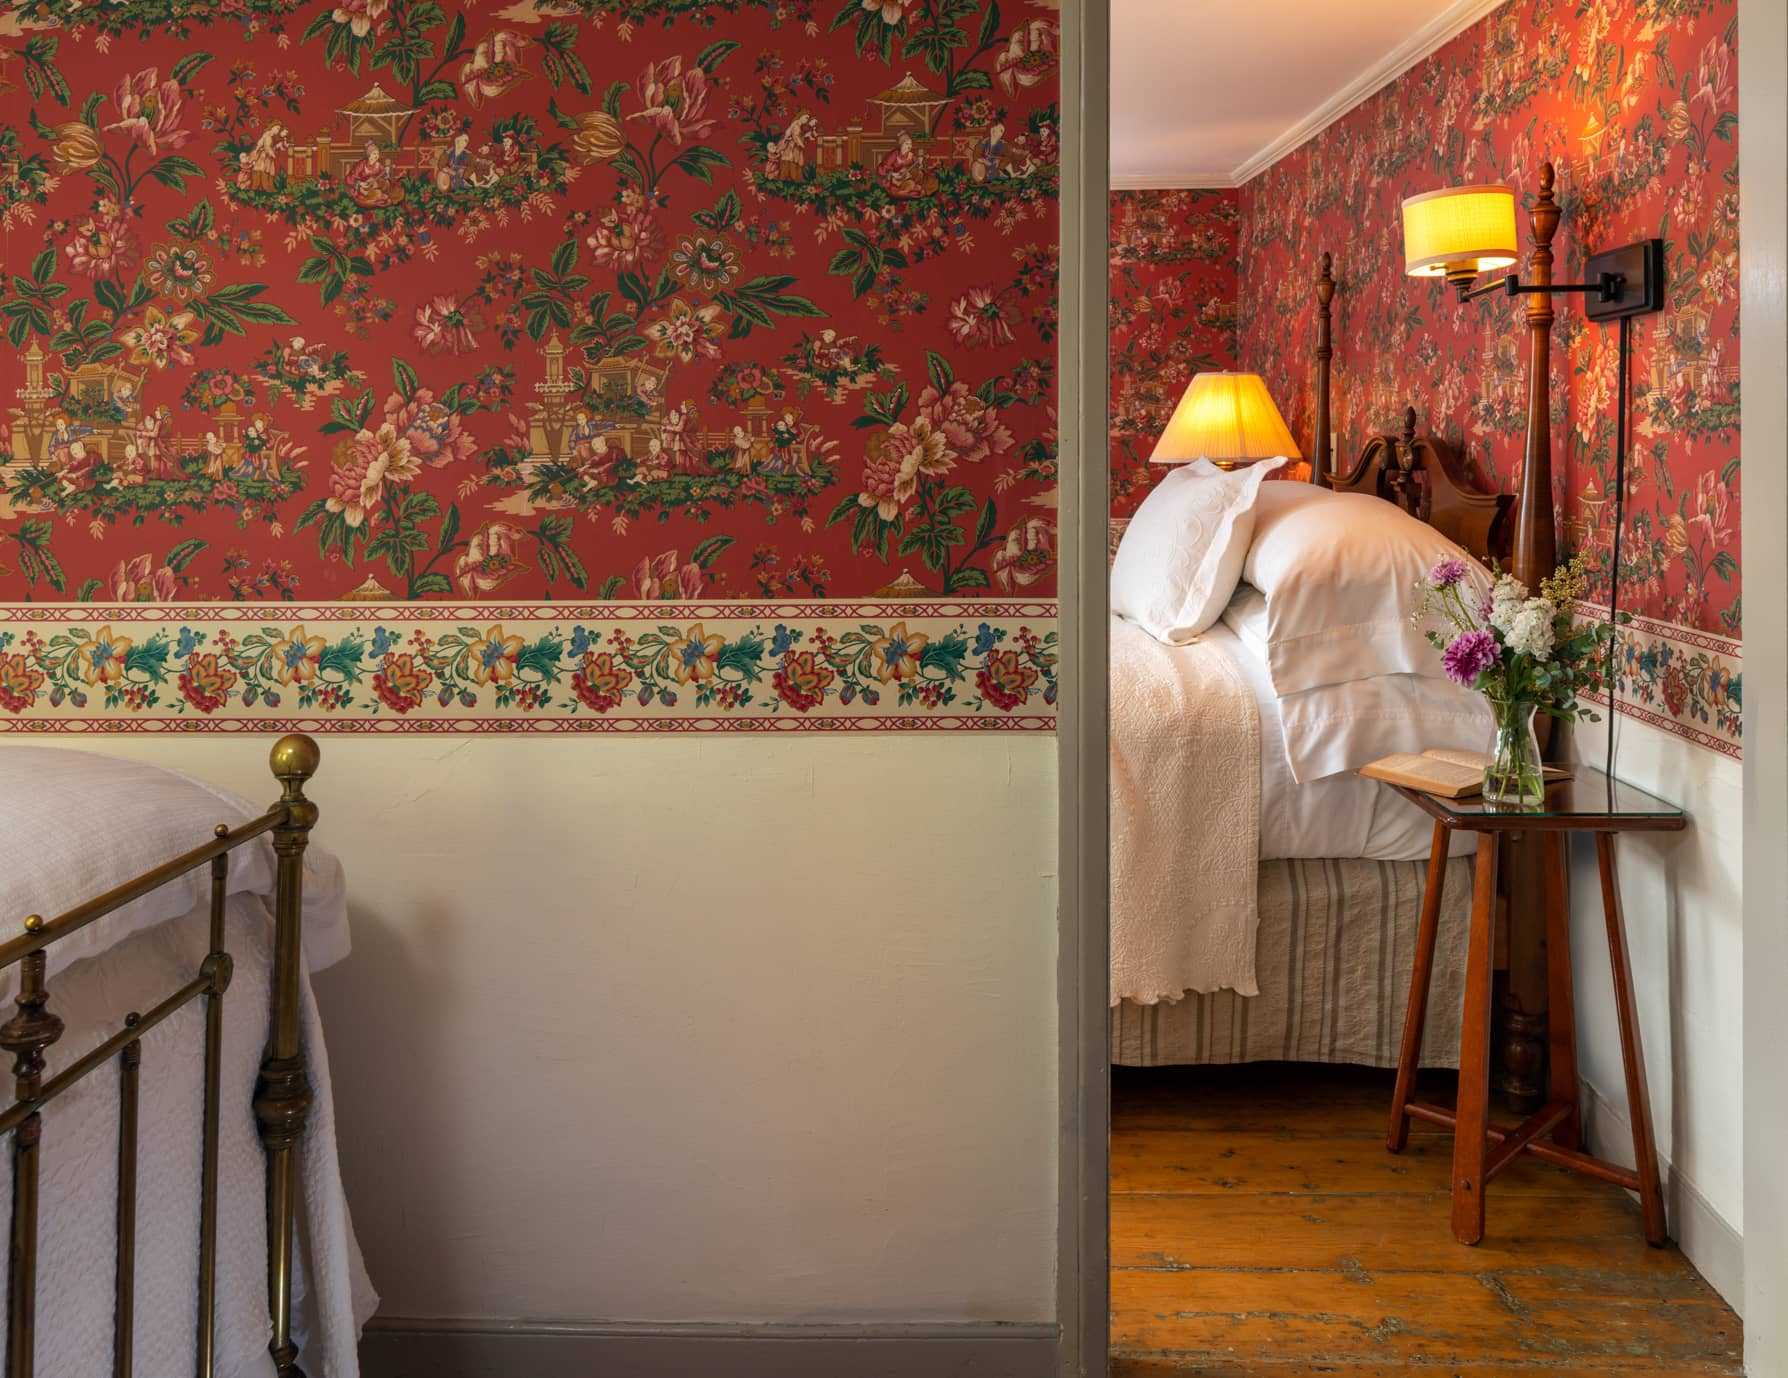 Room 2 with two beds in separate rooms and red floral wallpaper